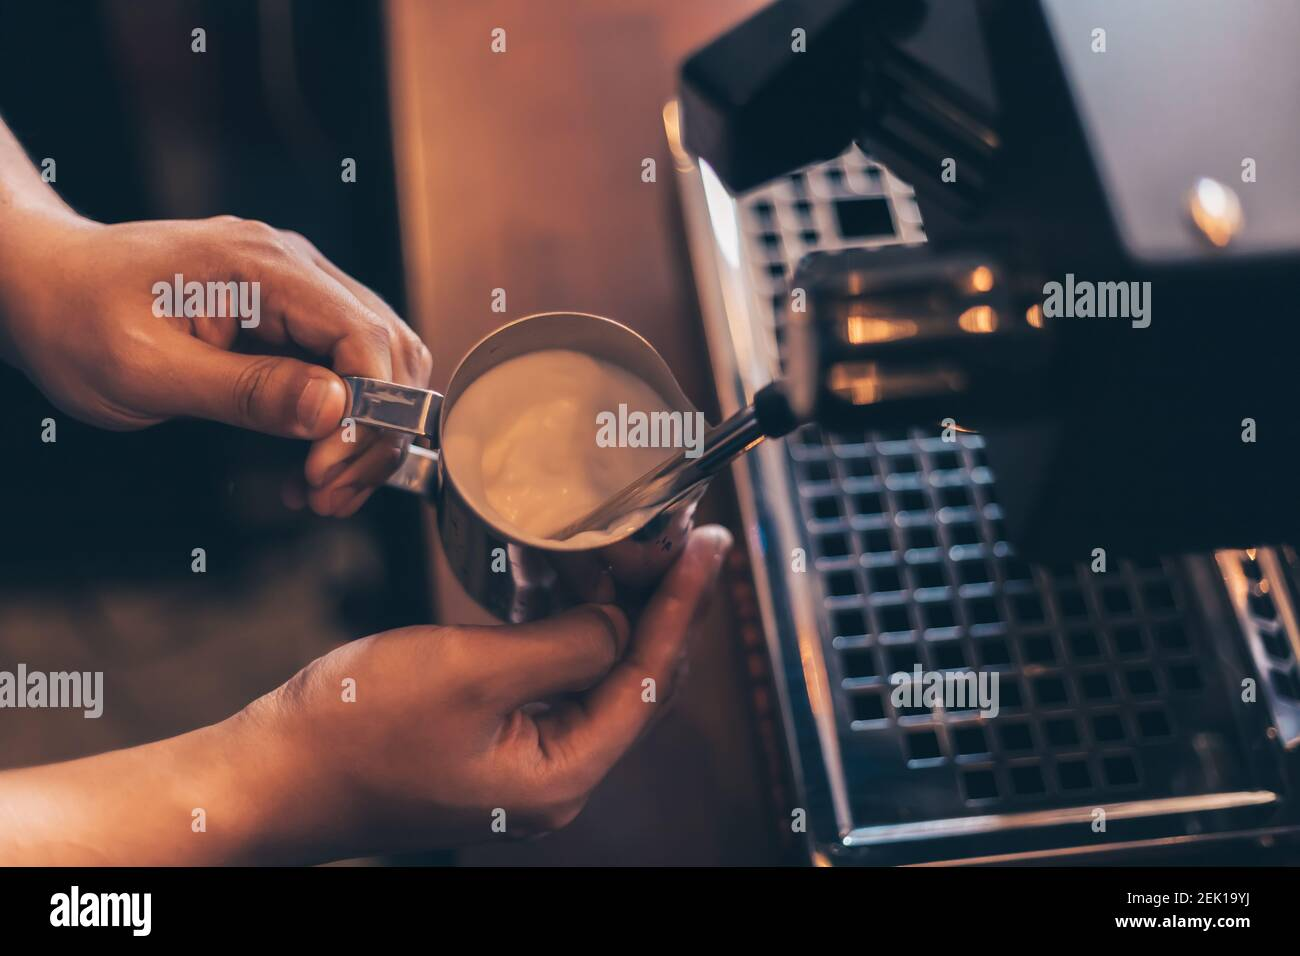 Barista heats milk steam for making lattes at coffee shop. Stock Photo